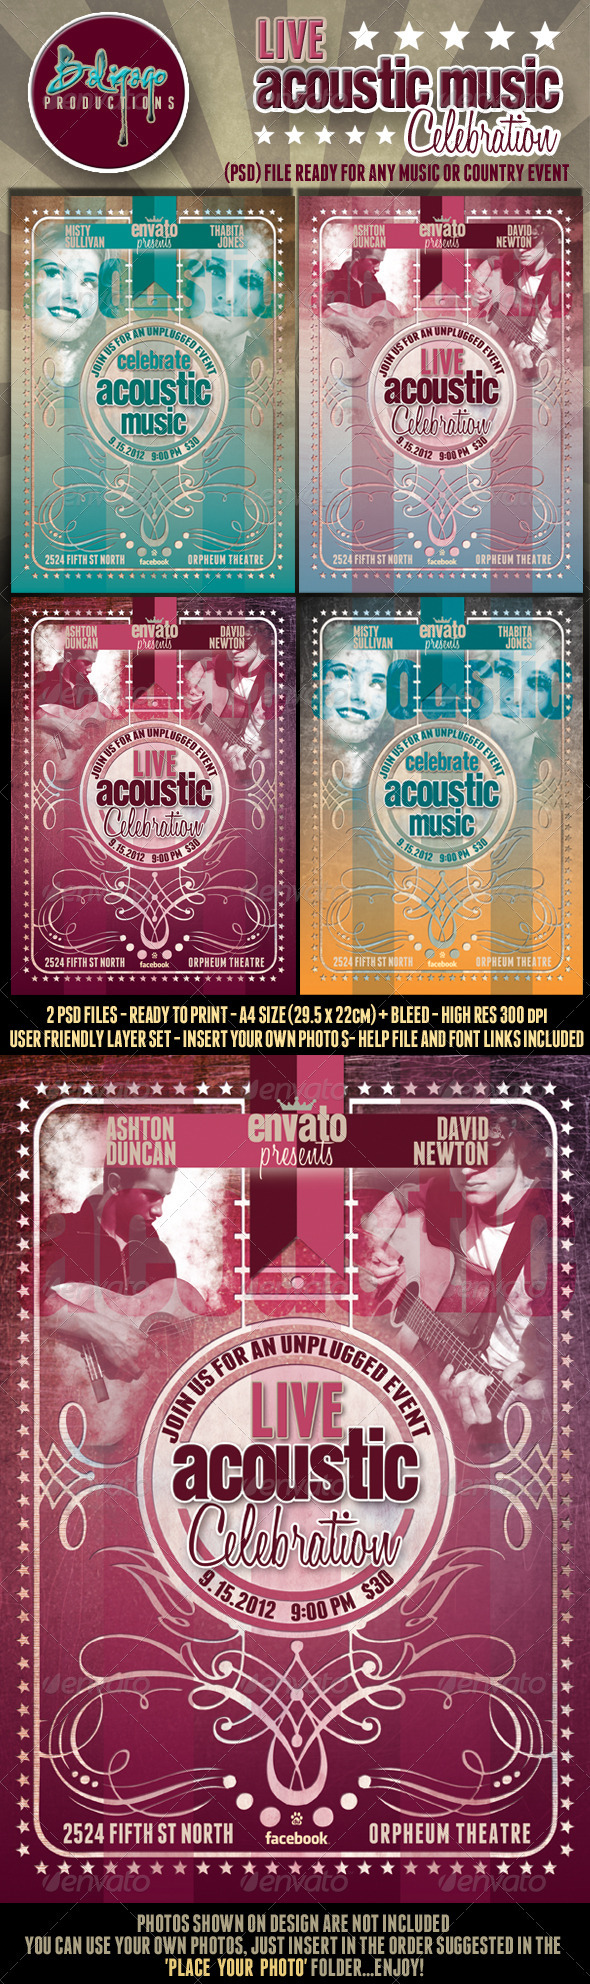 Live Acoustic Music Celebration Flyer Poster - Concerts Events